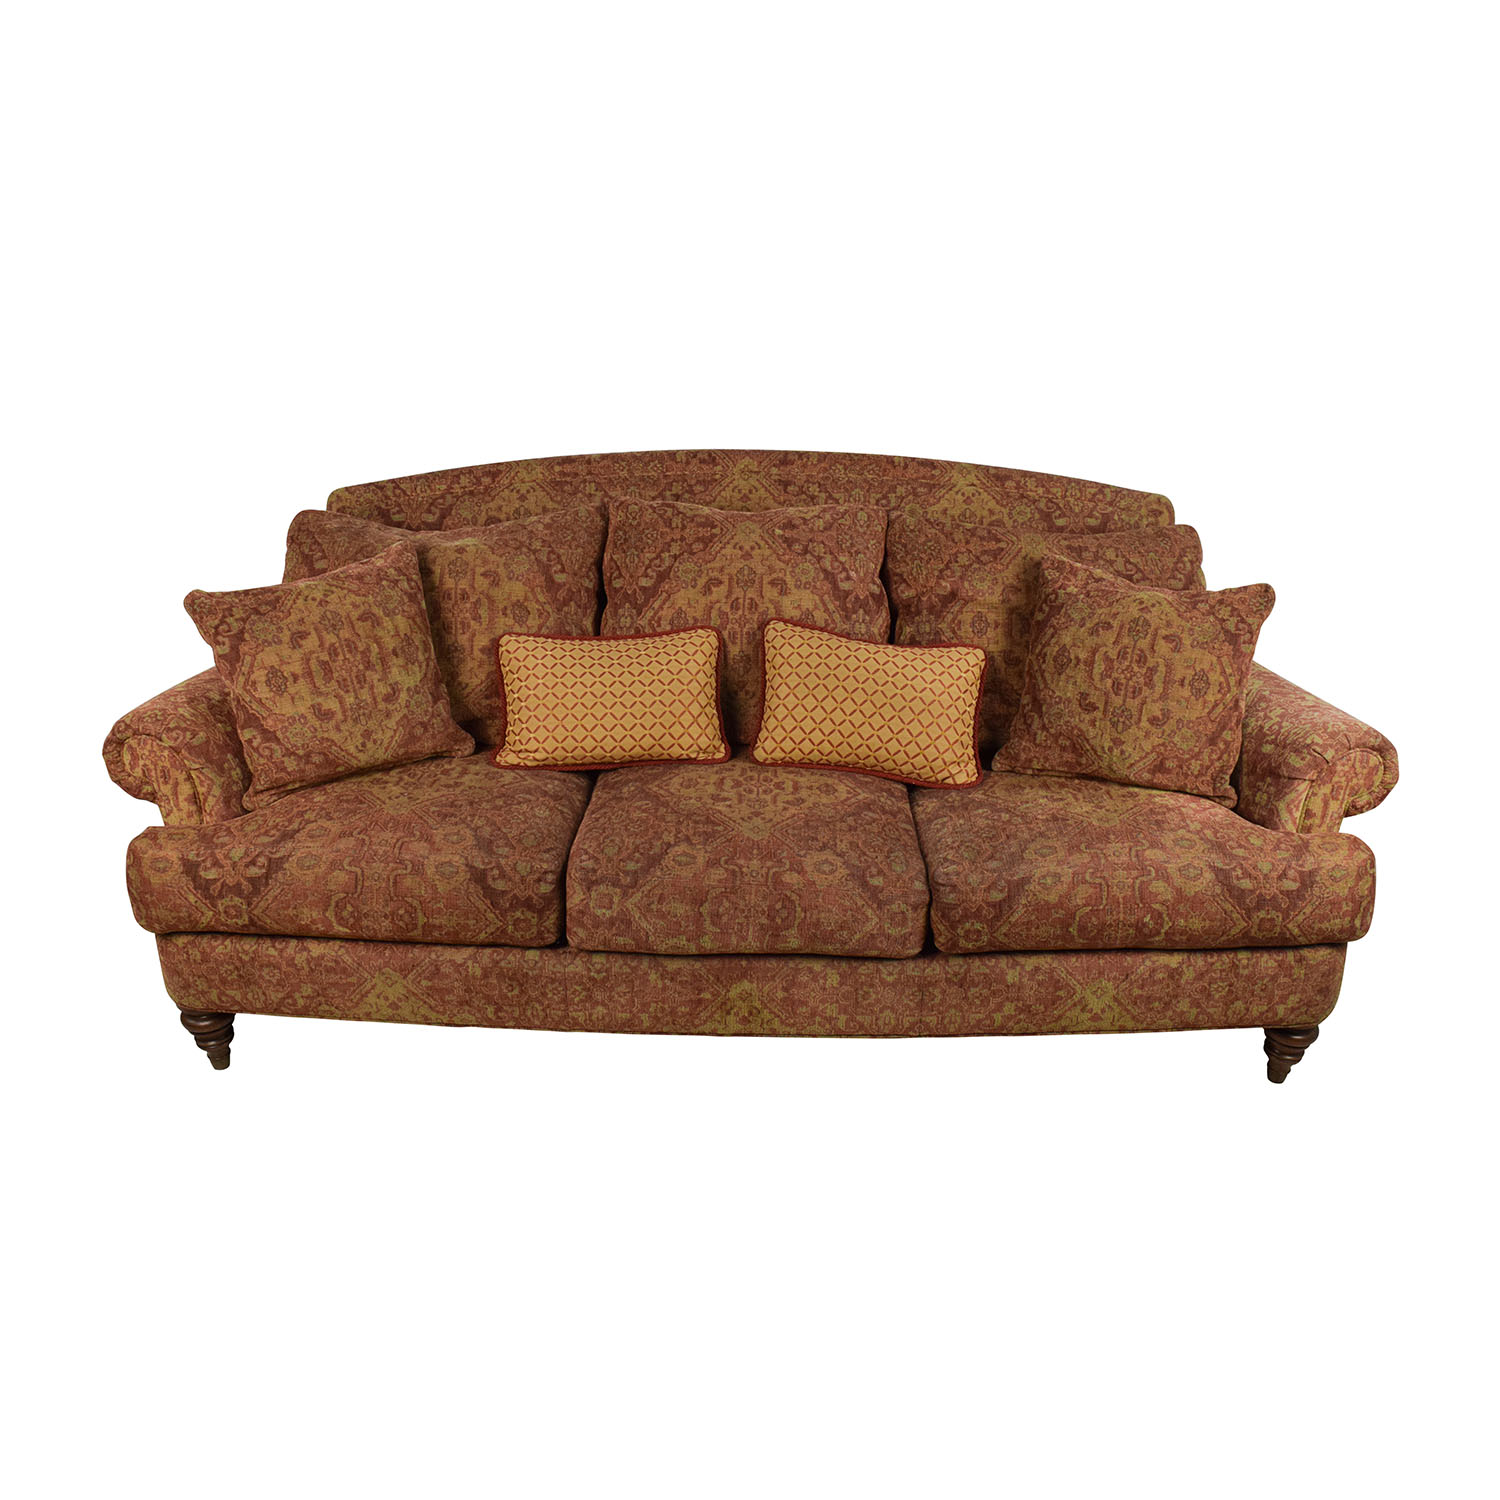 Ethan Allen Ethan Allen Paisley Cushioned Sofa with Toss Pillows coupon